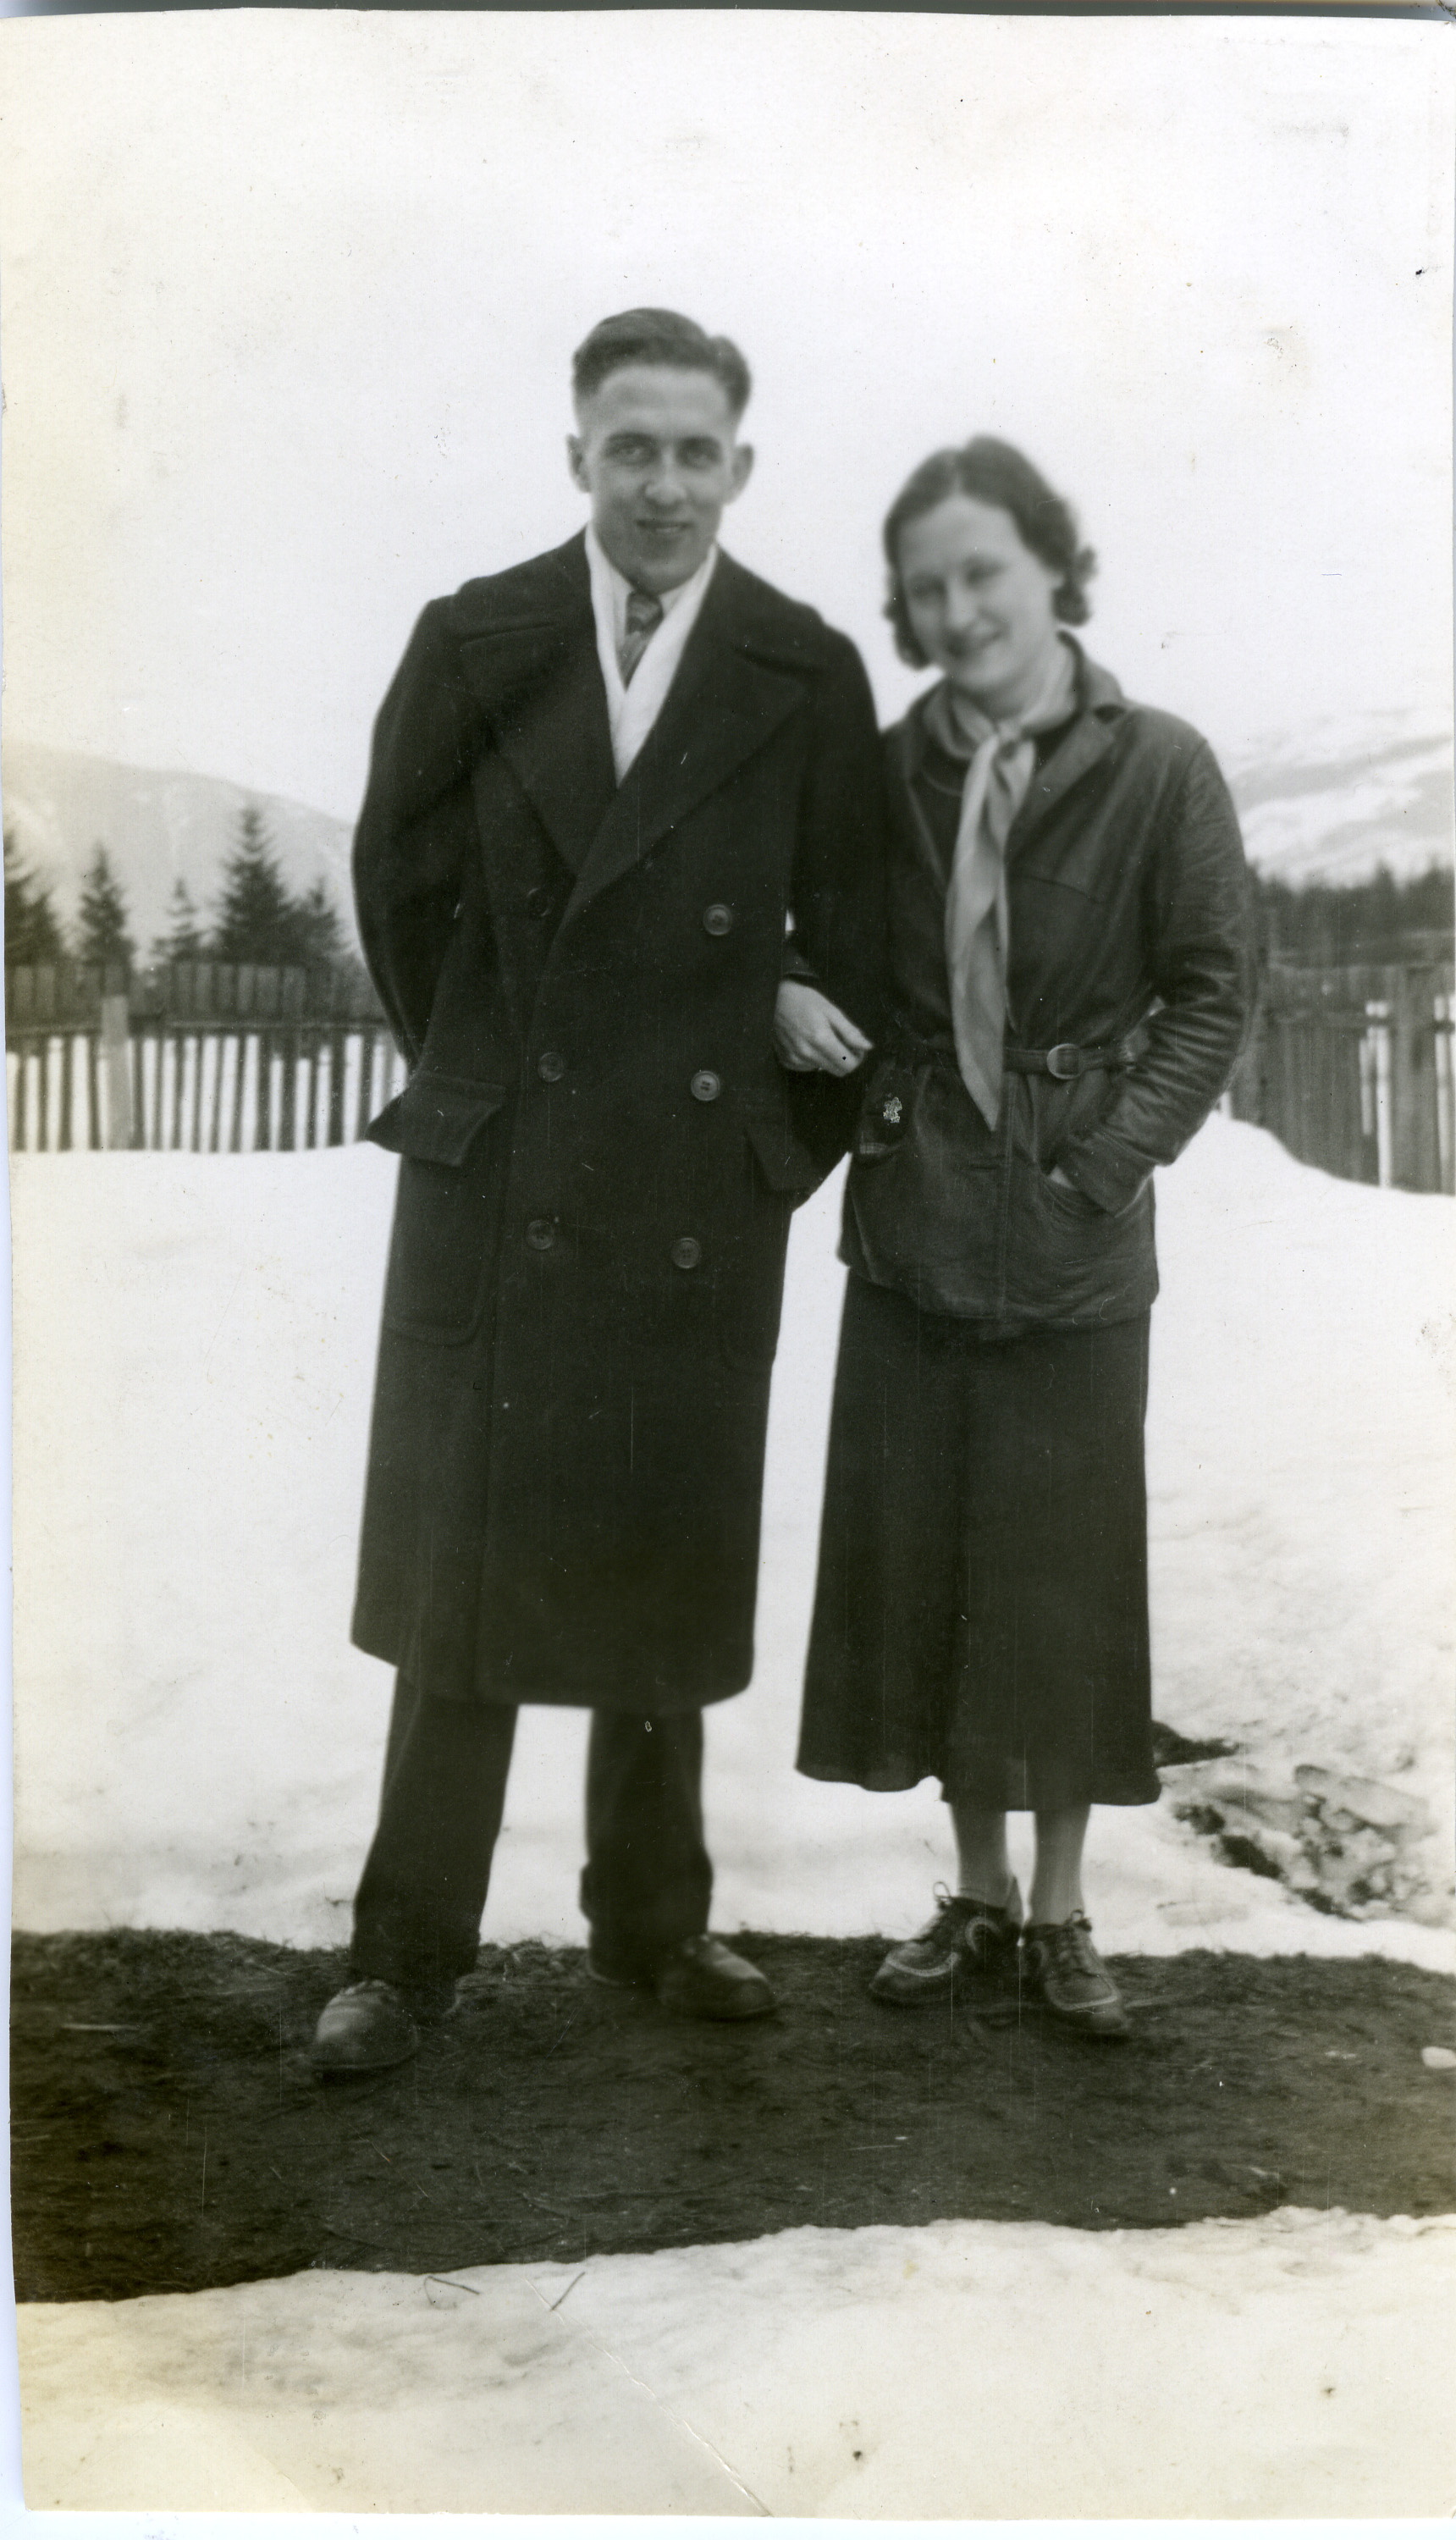 Wilmot and Isabelle Steed, c.1930s